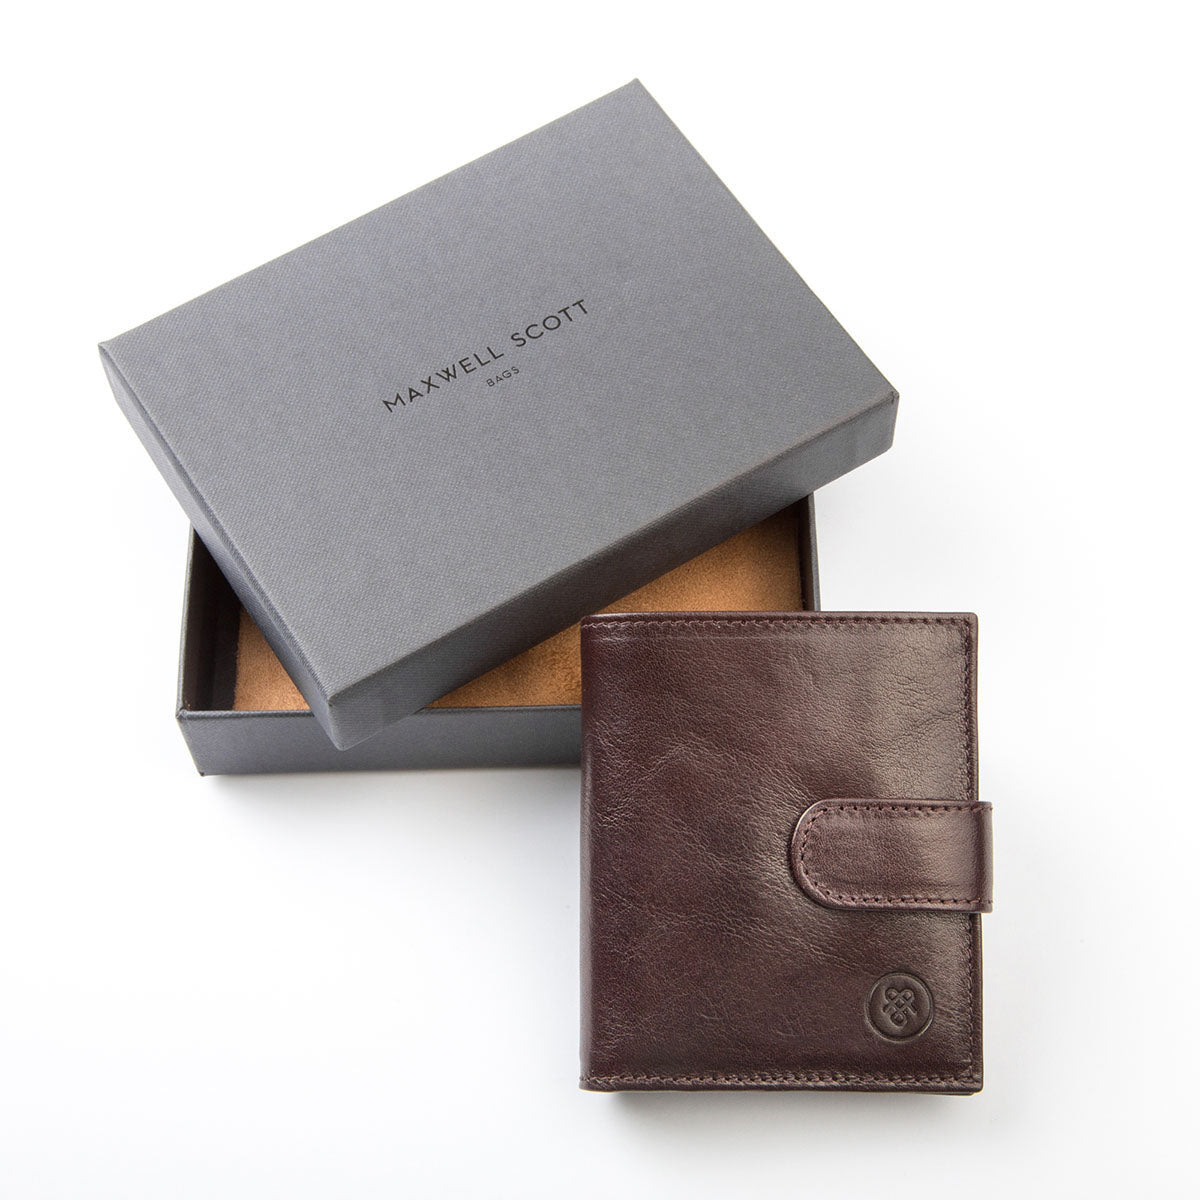 Image 8 of the 'Pietre' Brown Veg-Tanned Leather Compact Wallet